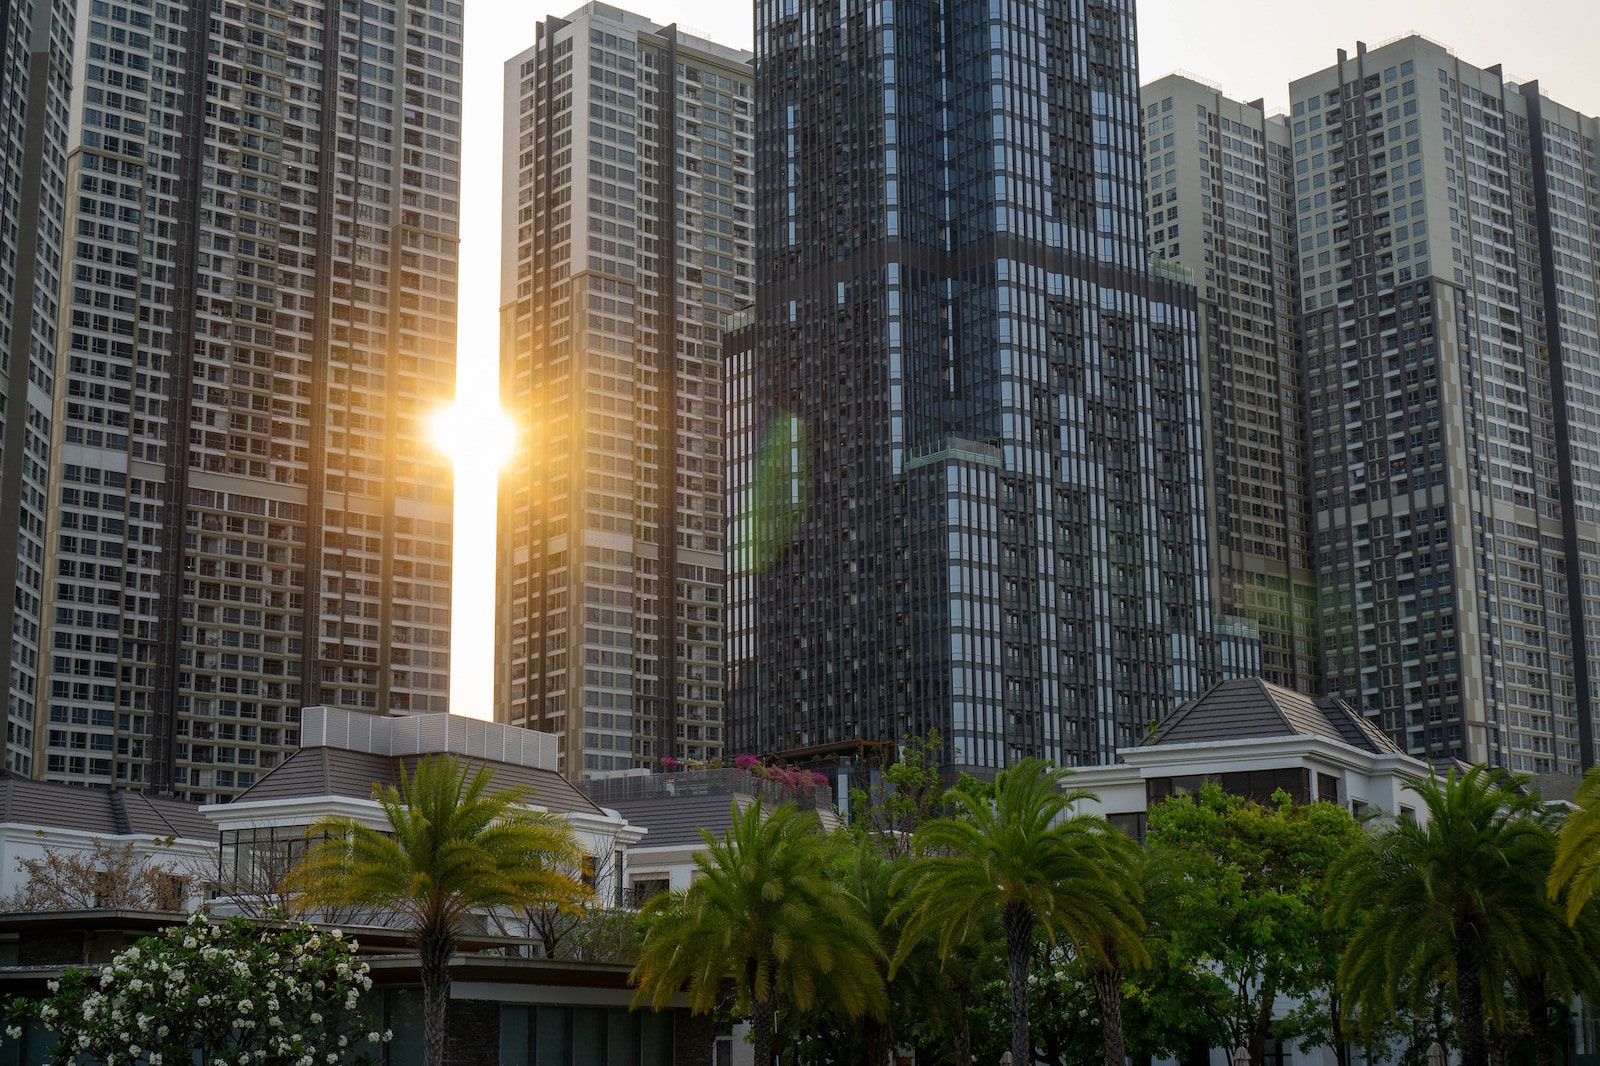 Image of the sun setting behind Vinhomes Apartment in HCMC, Vietnam